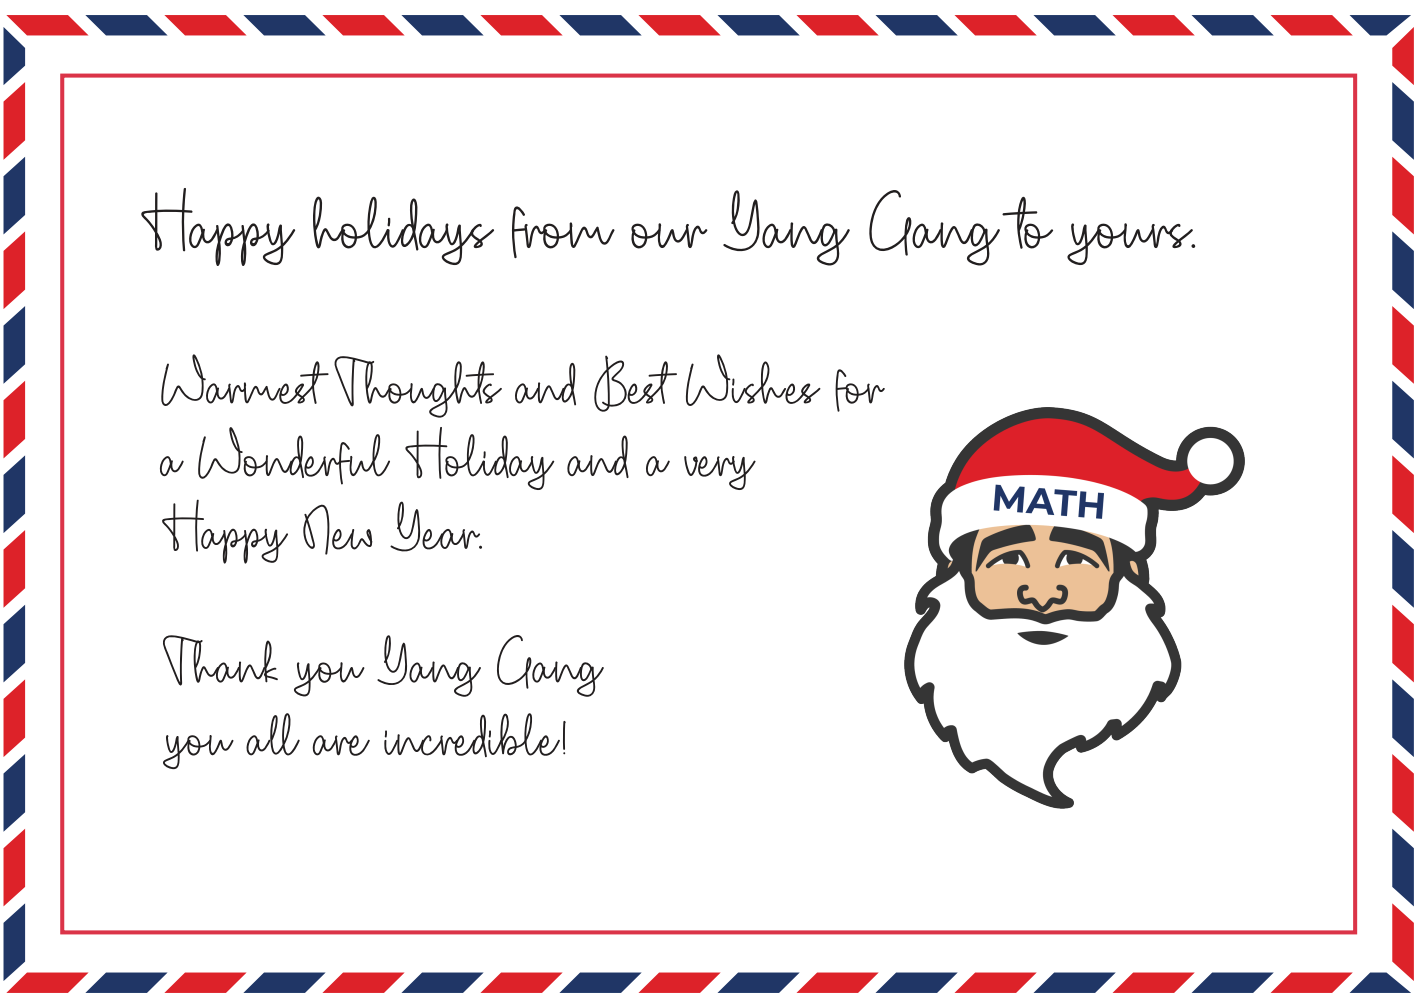 Happy holidays from our Yang Gang to yours. Warmest Thoughts and Best Wishes for a Wonderful Holiday and a very Happy New Year. Thank you Yang Gang you are incredible!